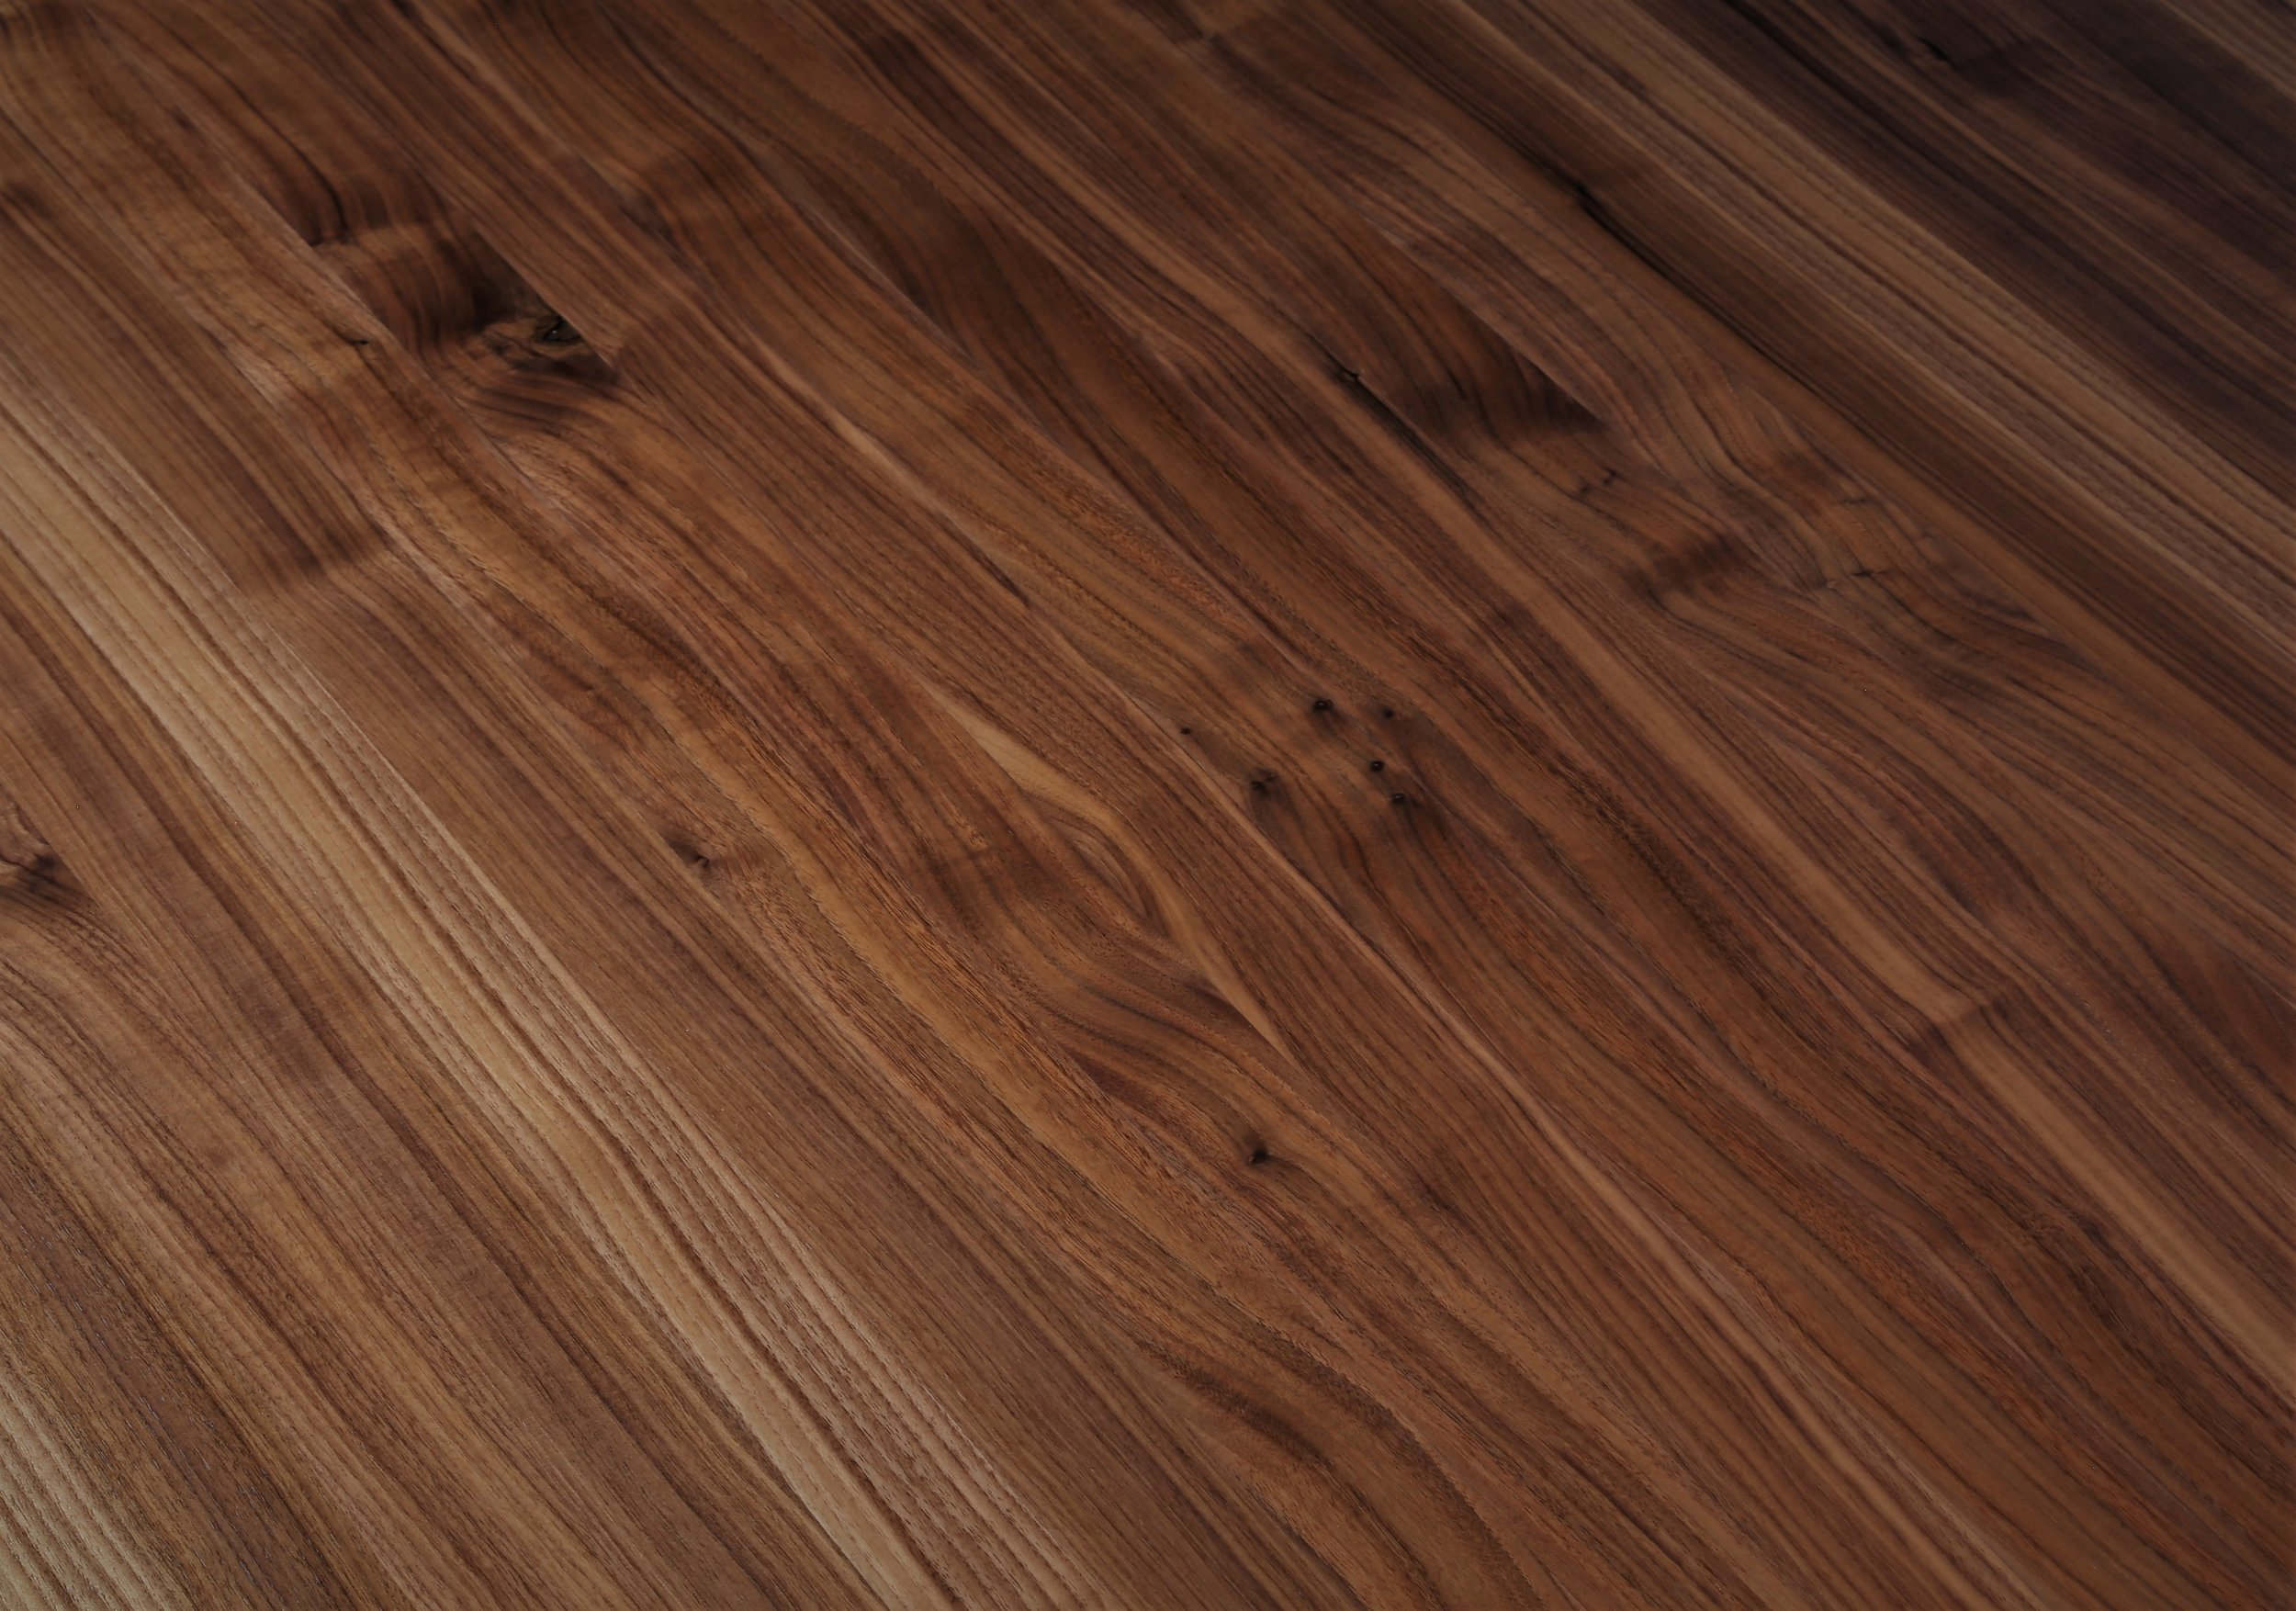 American Black Walnut Edge Grain